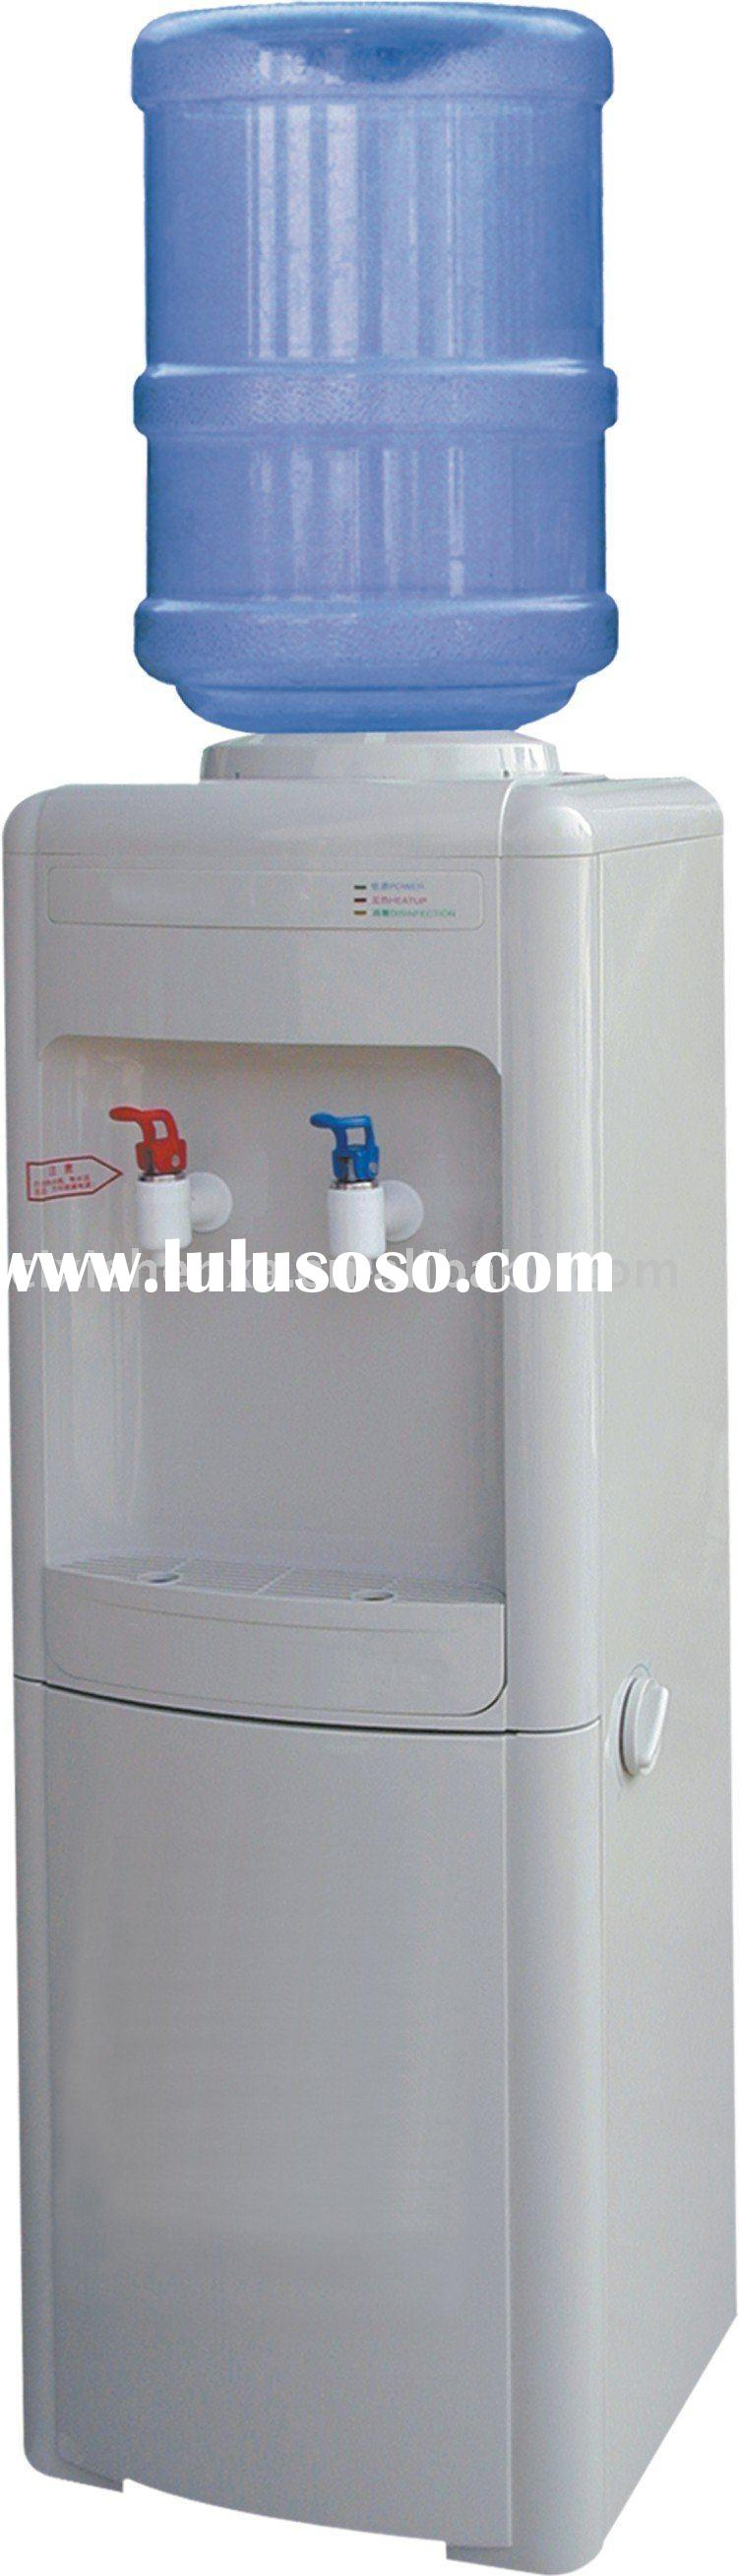 Hot Cold water dispenser / water Cooler YLRS-B3